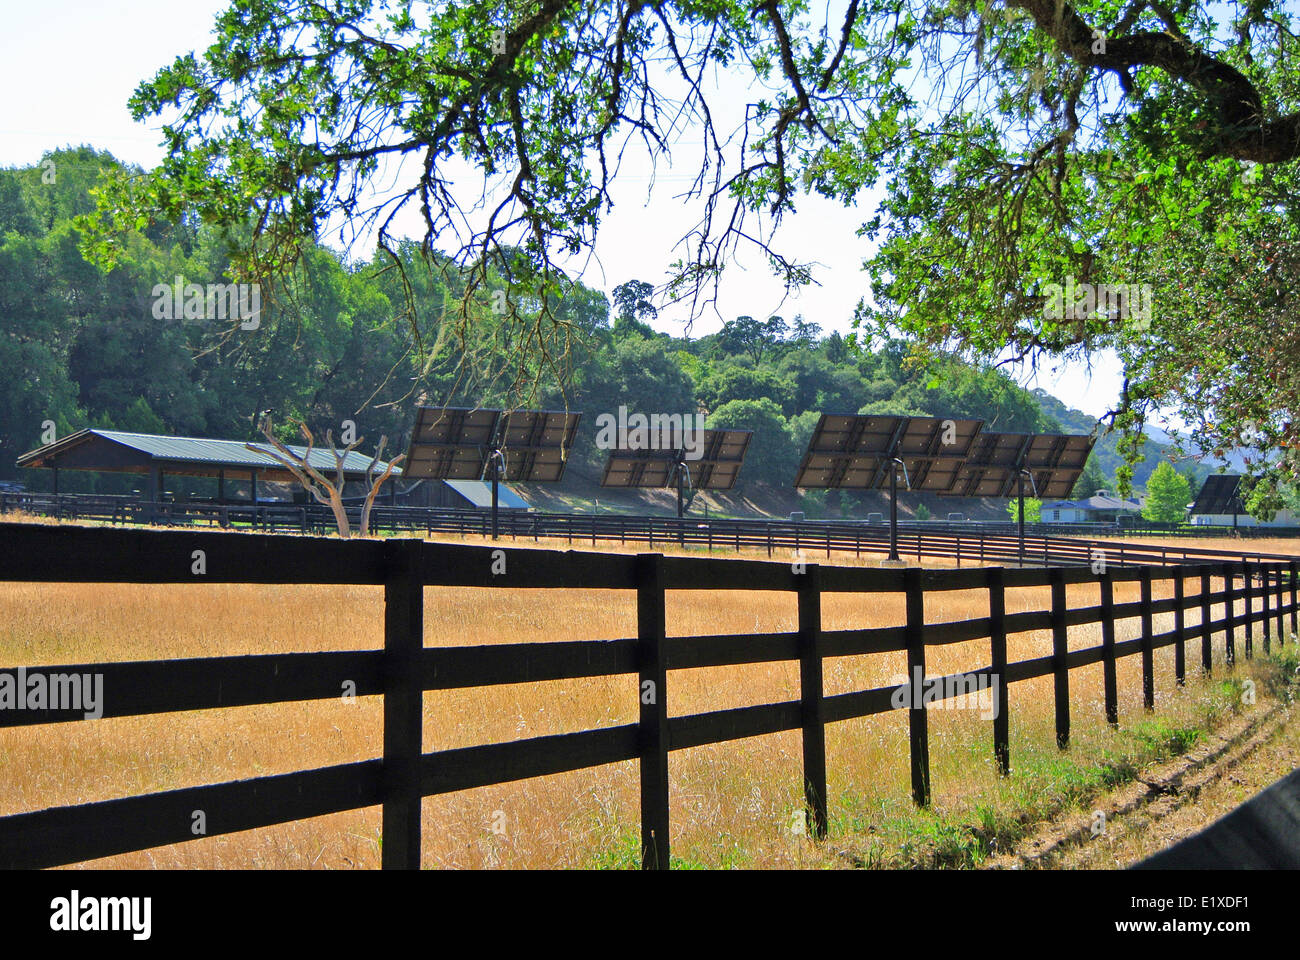 Fence Panels Stock Photos Amp Fence Panels Stock Images Alamy